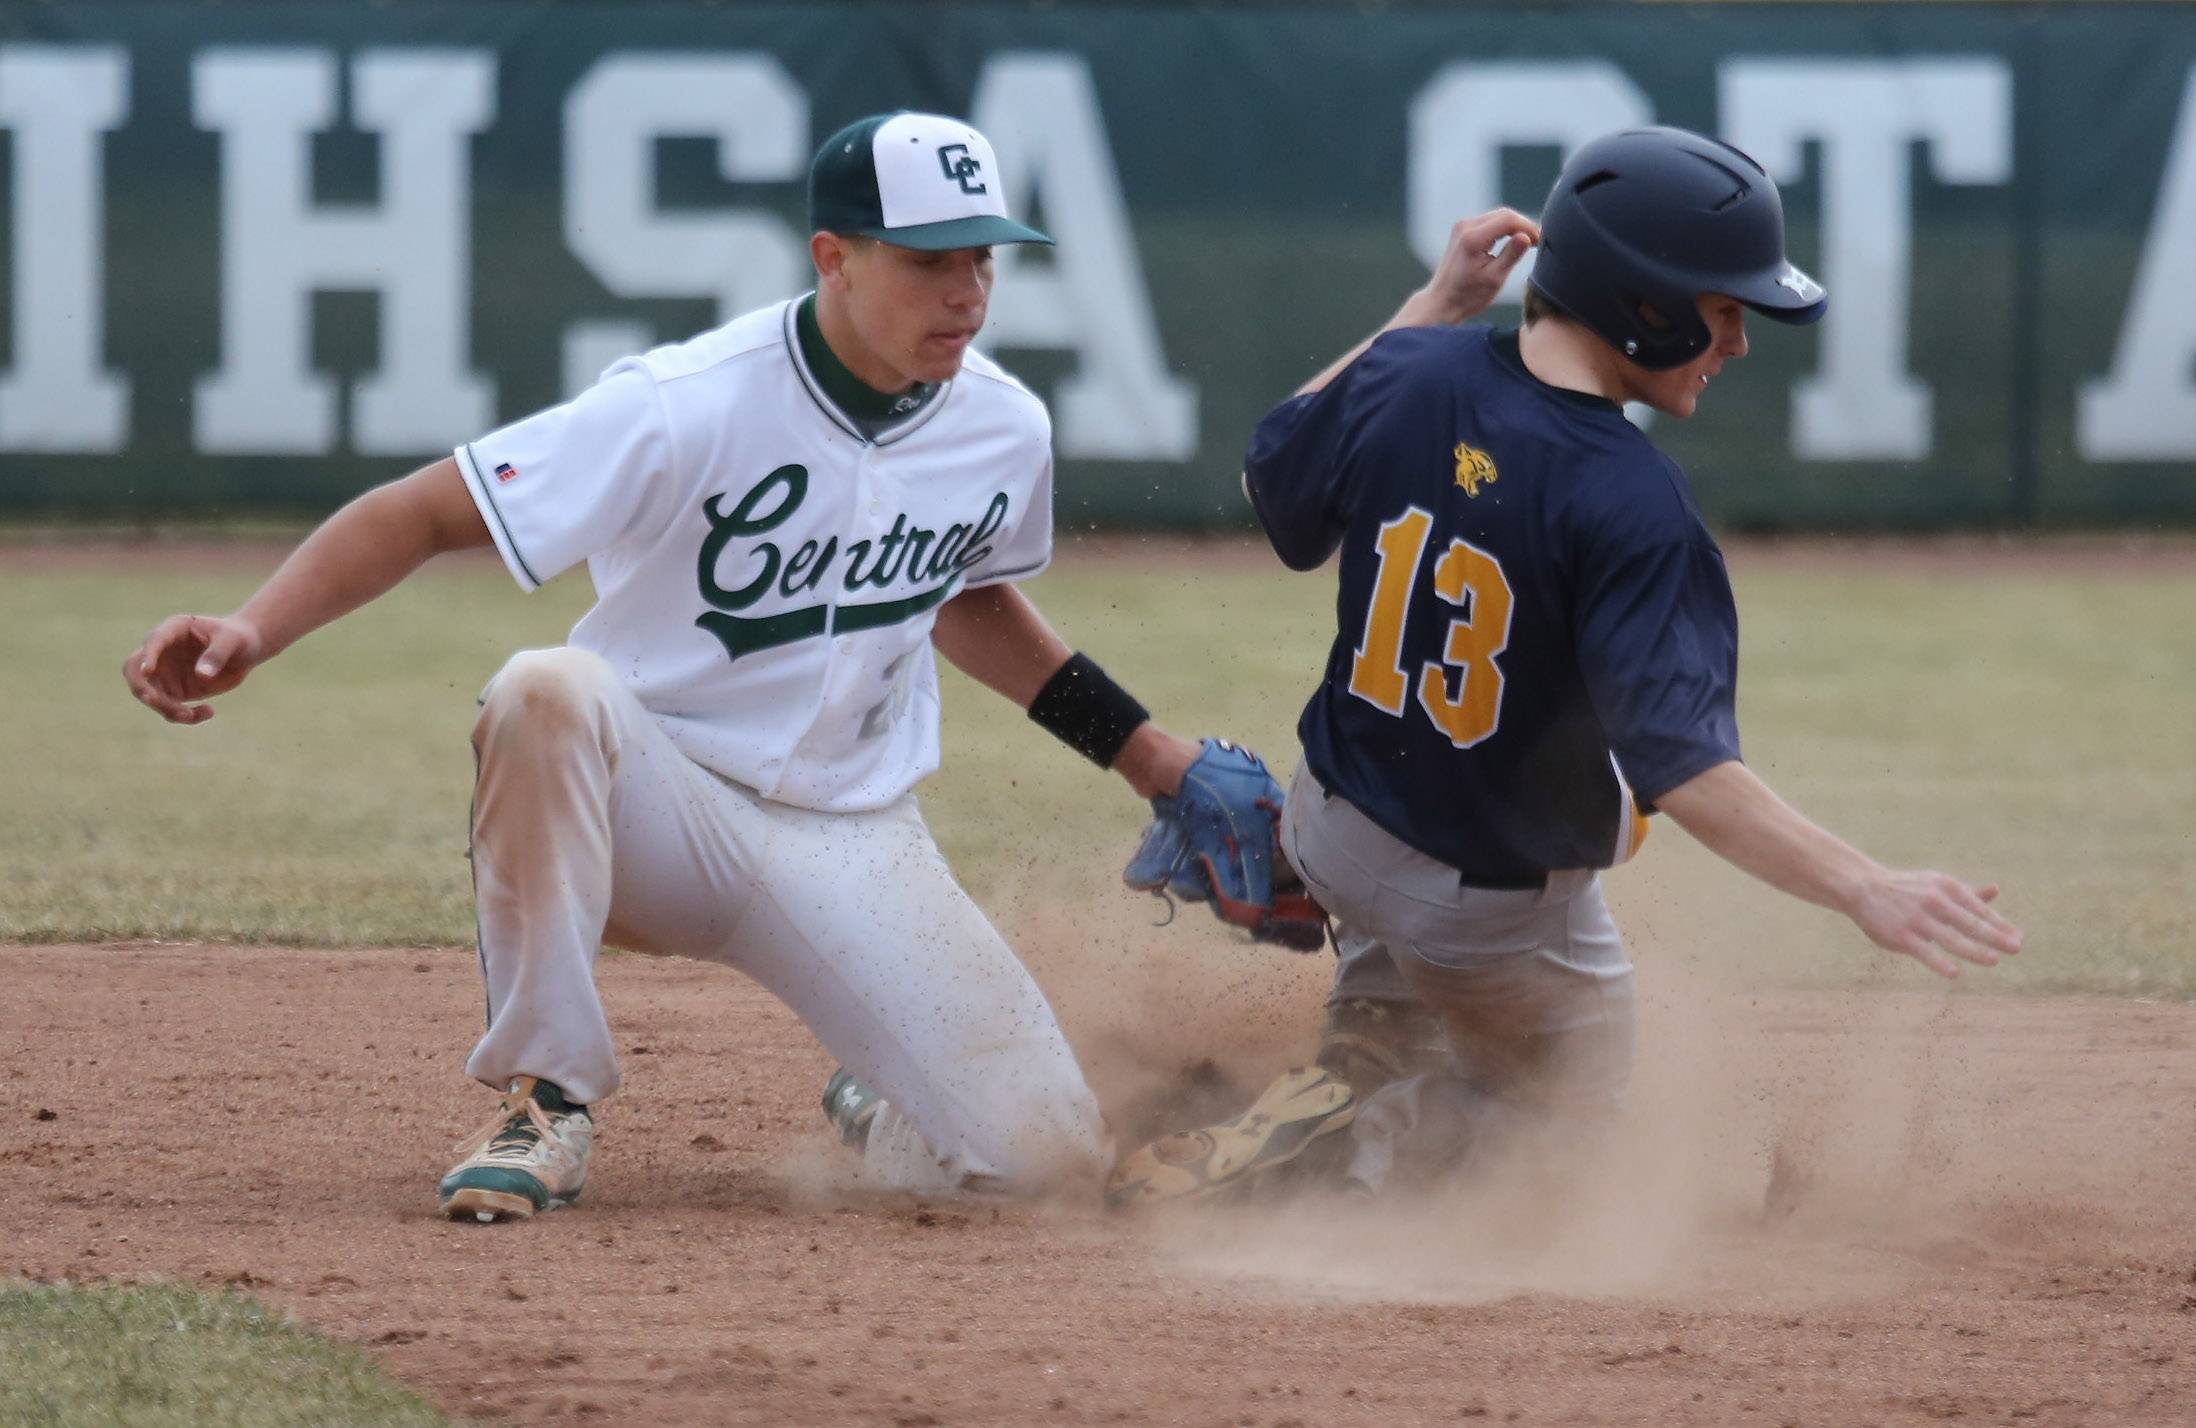 Round Lake runner Ryan Newman slides safely into second base, beating the tag of second baseman Freddie Landers in the third inning Monday at Grayslake Central.